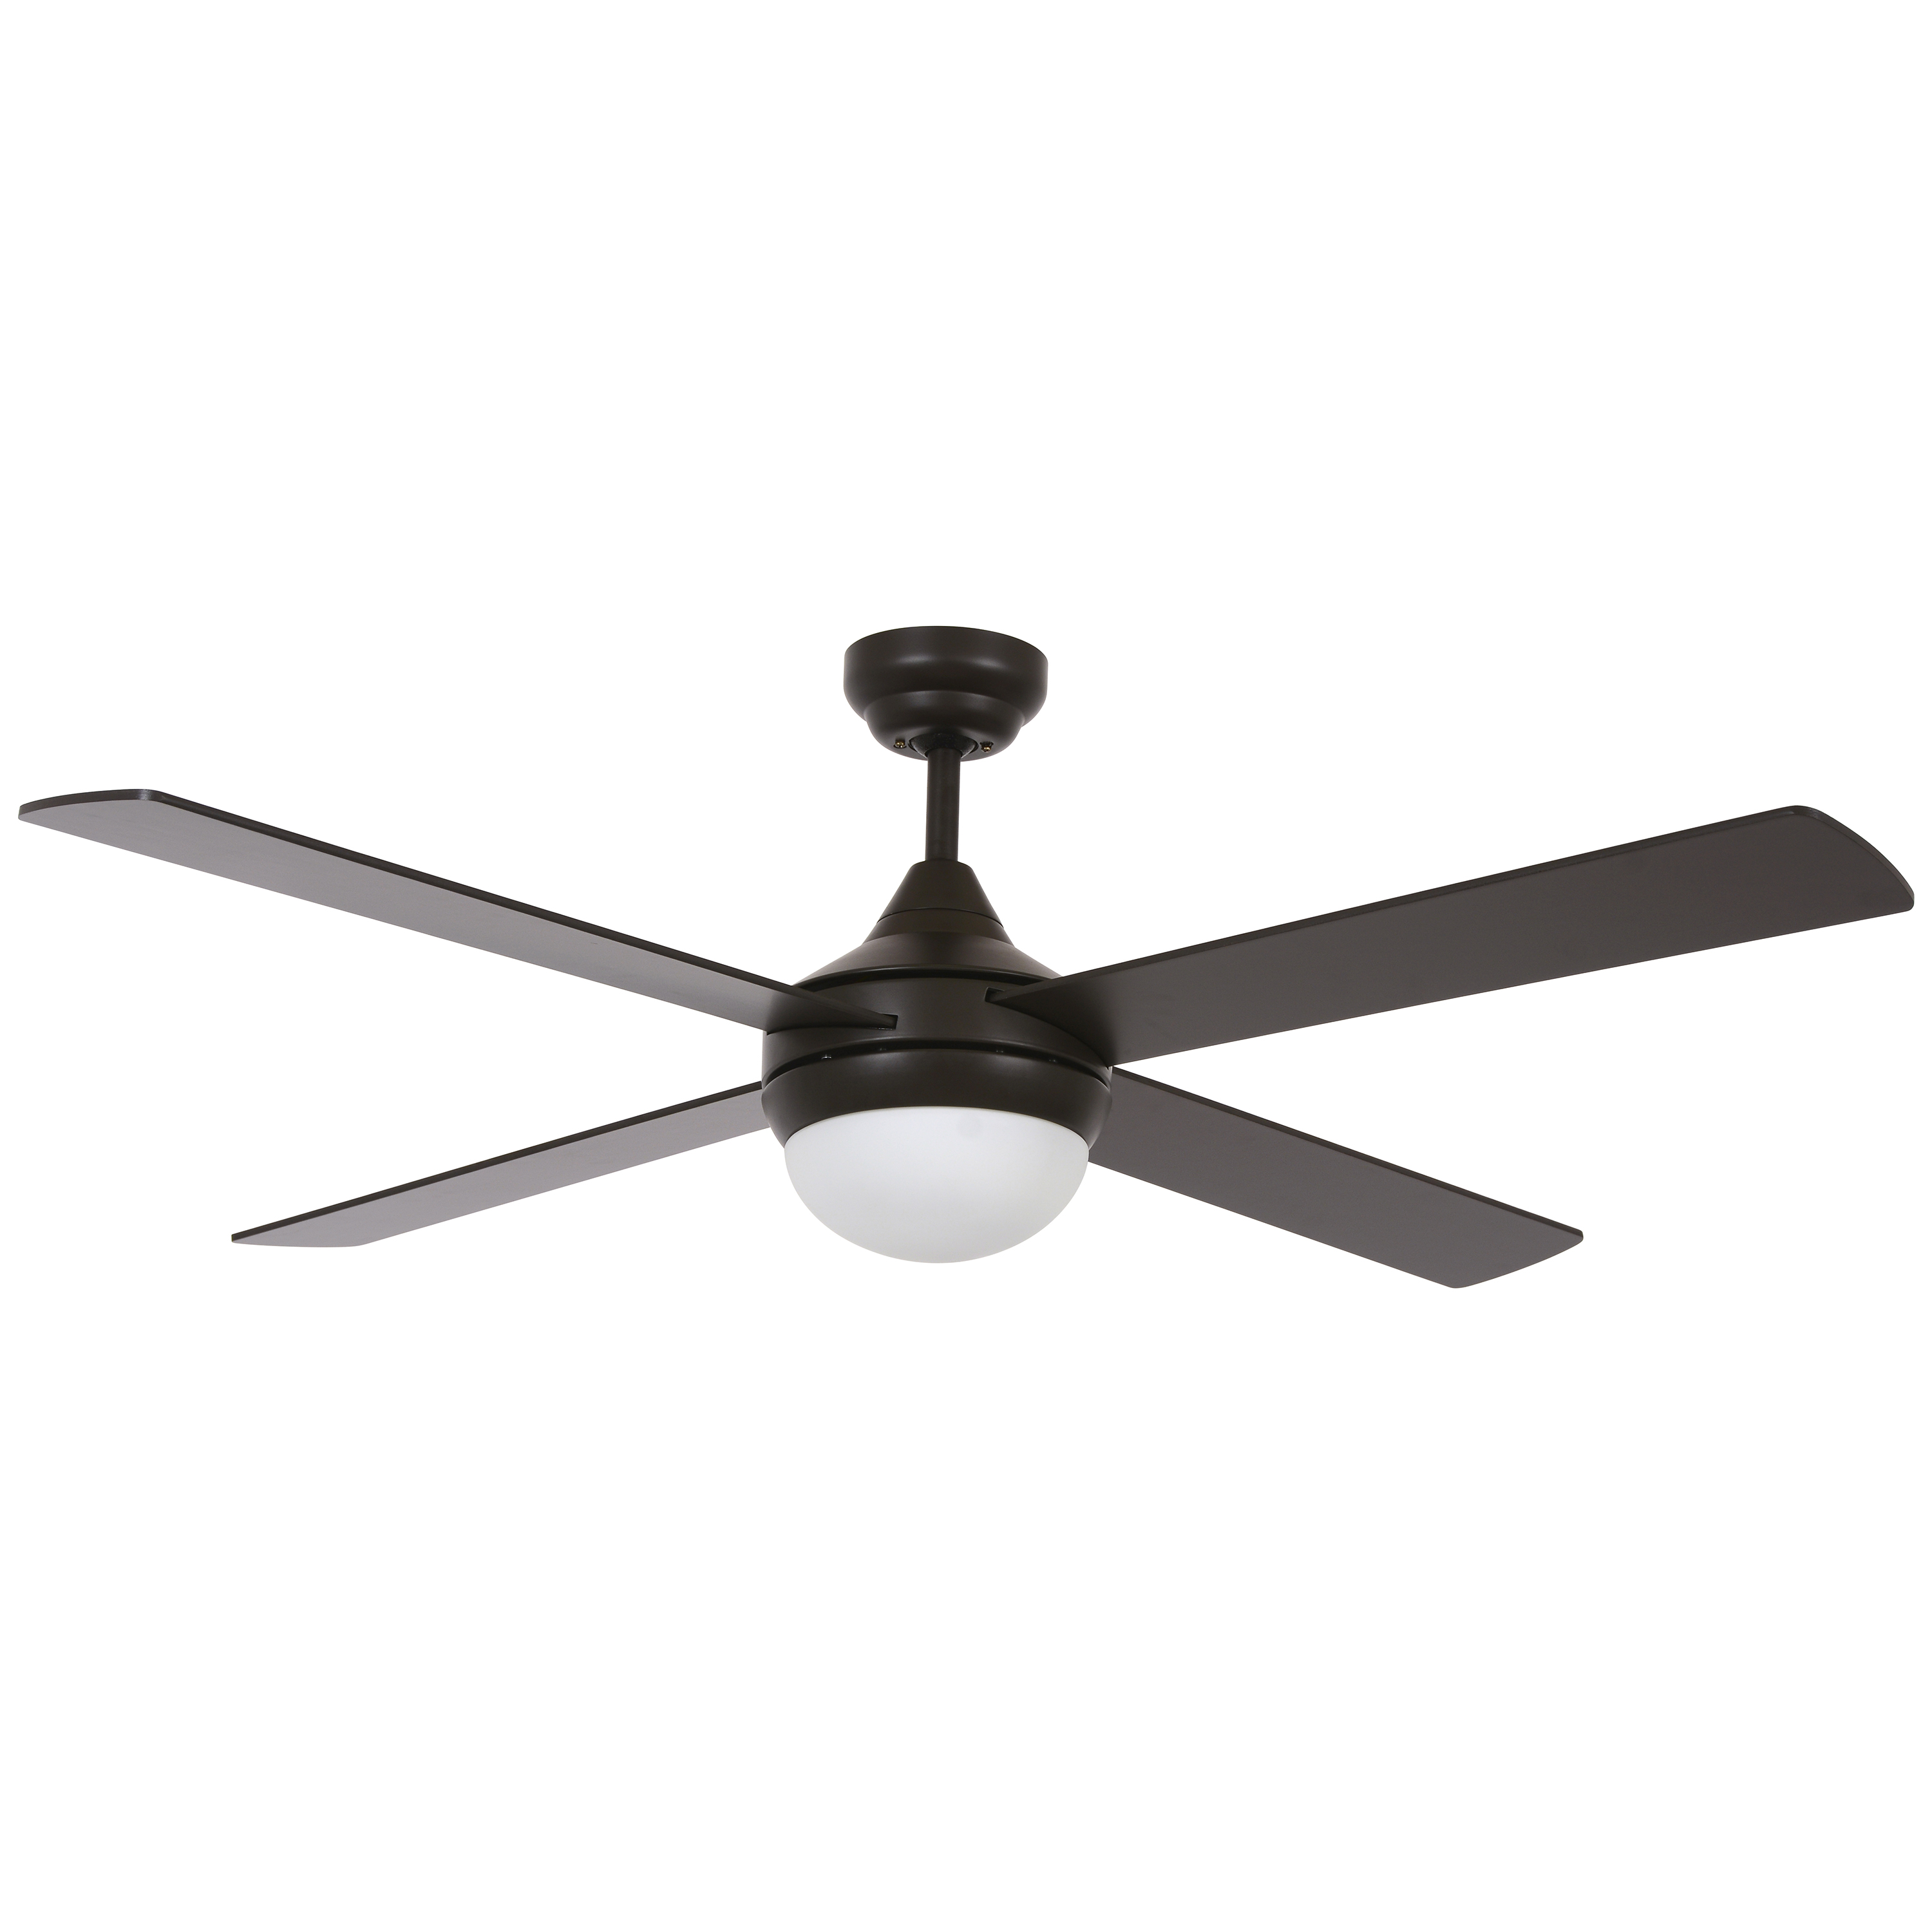 Covert 64-in Aged Bronze Finish LED Indoor//Outdoor Ceiling Fan Light Kit Remote